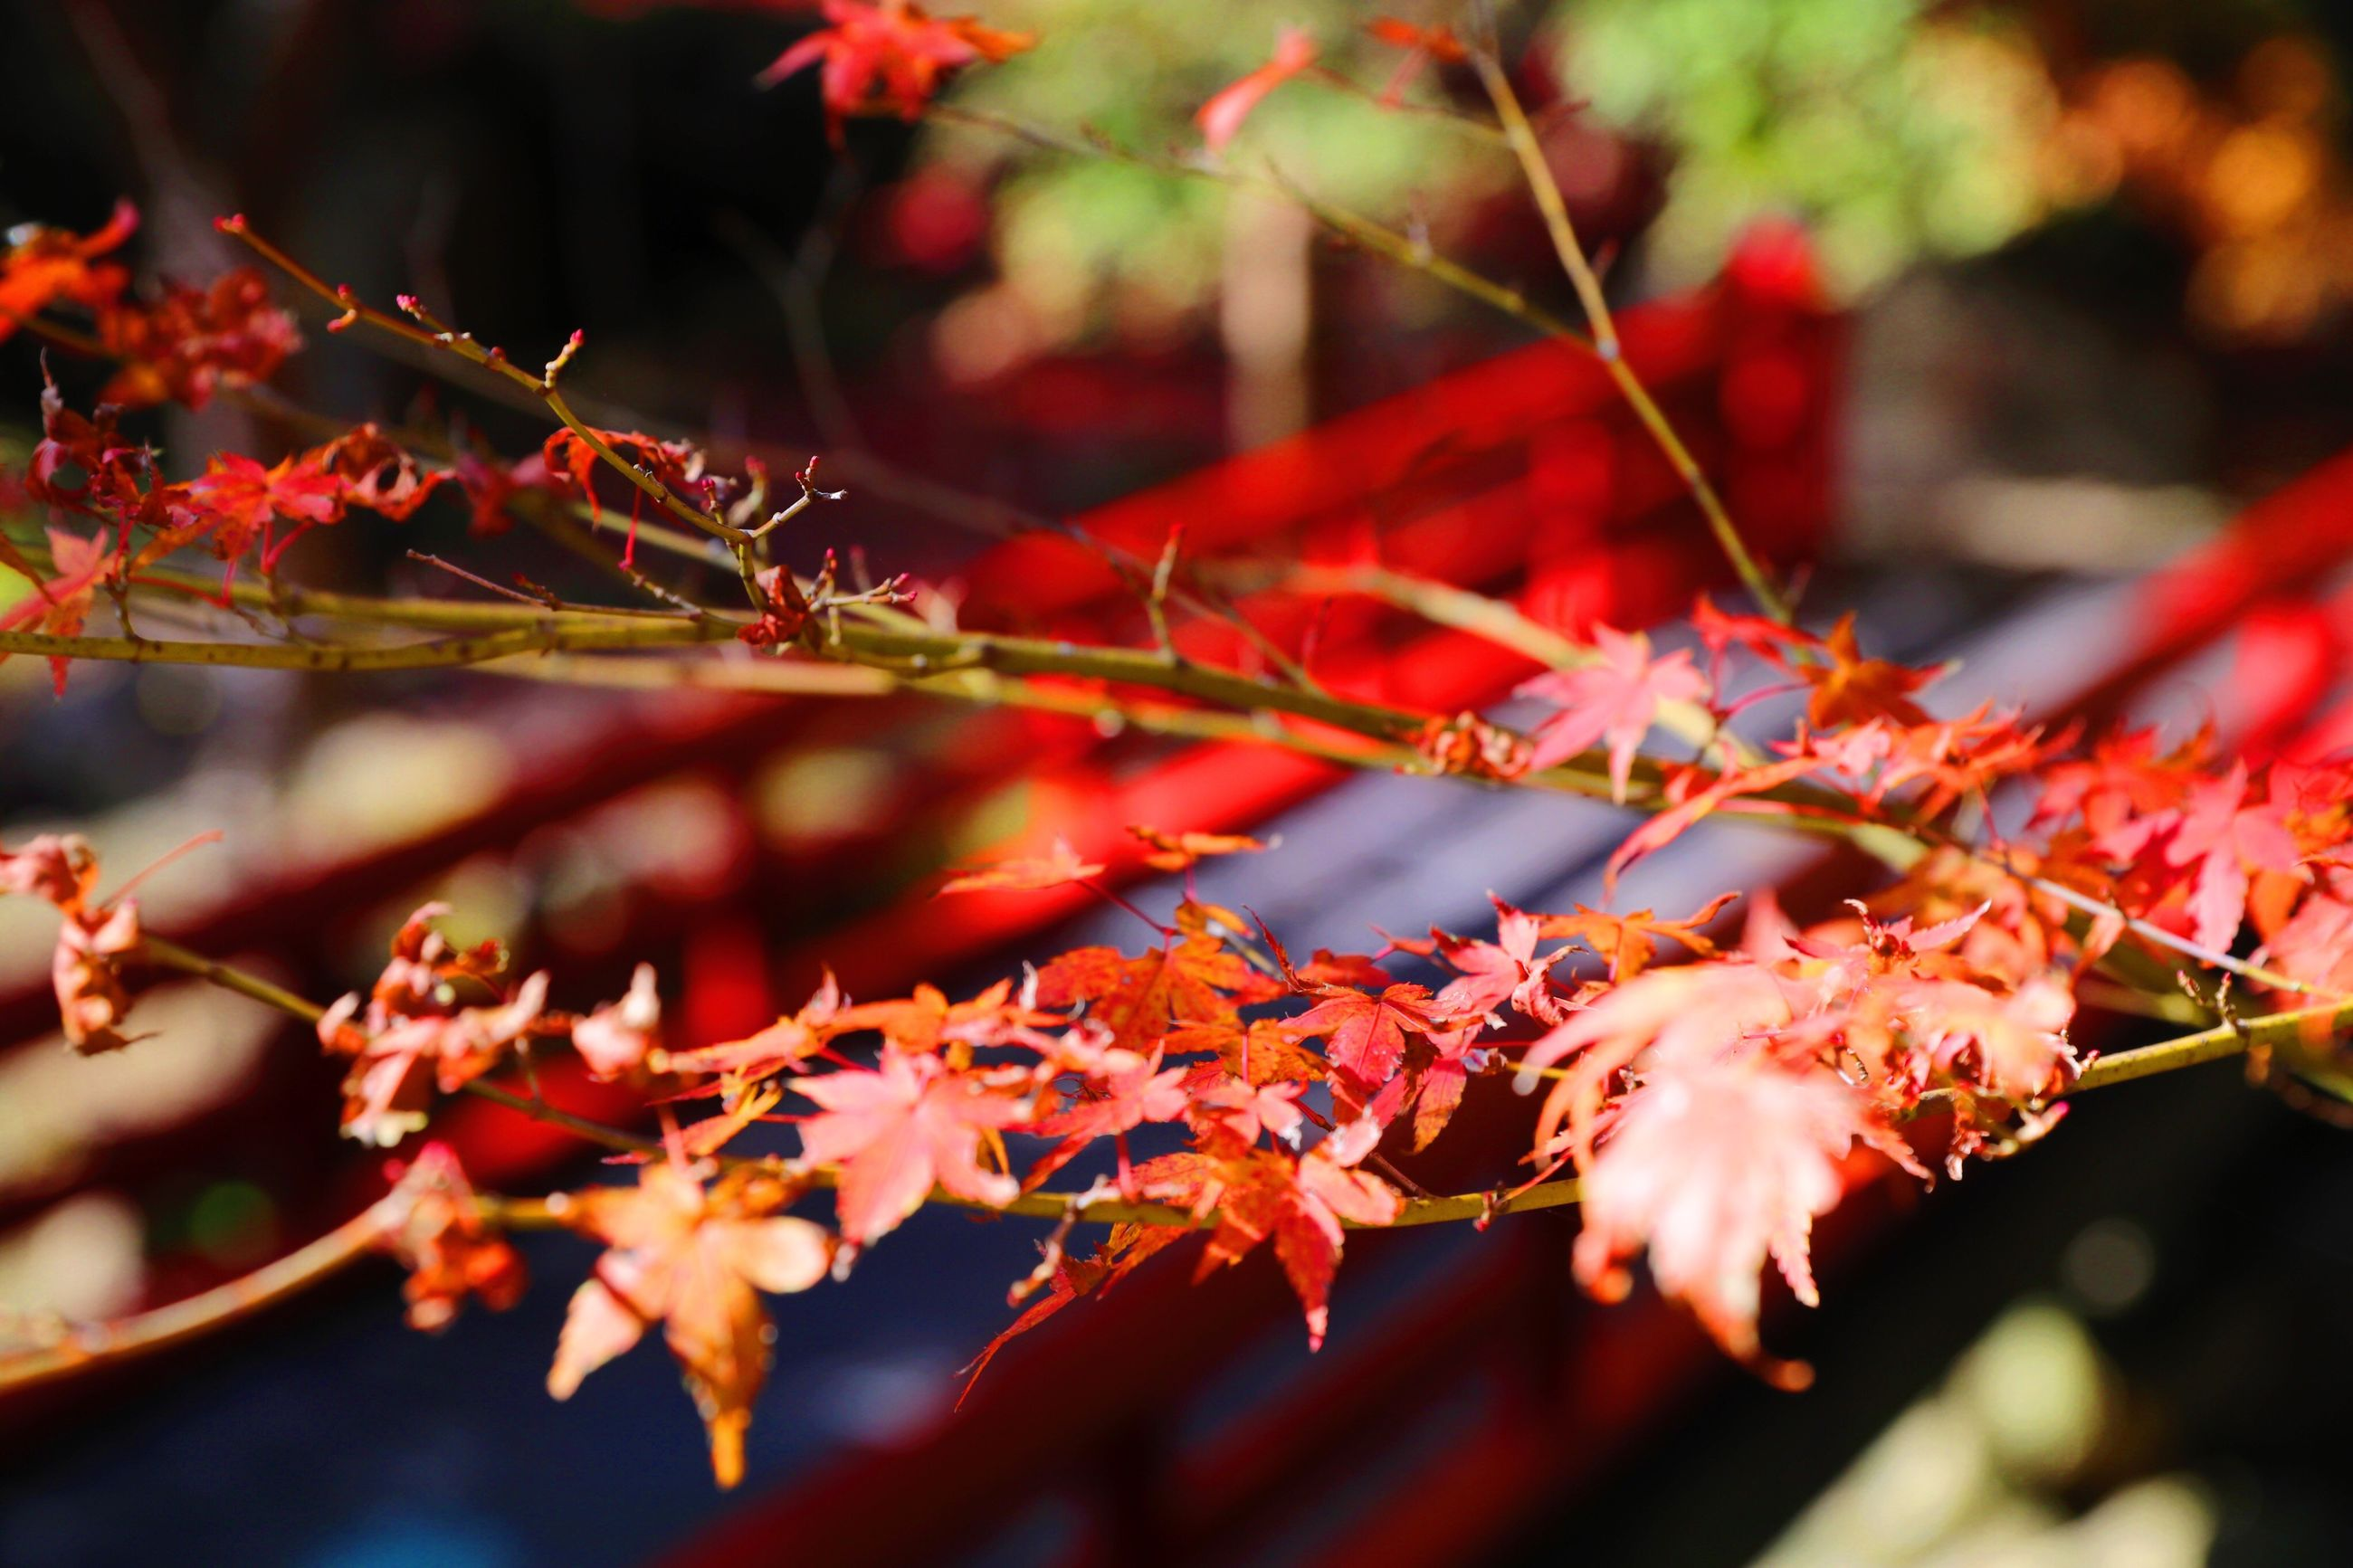 autumn, leaf, nature, change, beauty in nature, maple leaf, growth, red, close-up, outdoors, leaves, no people, maple tree, day, tree, maple, branch, freshness